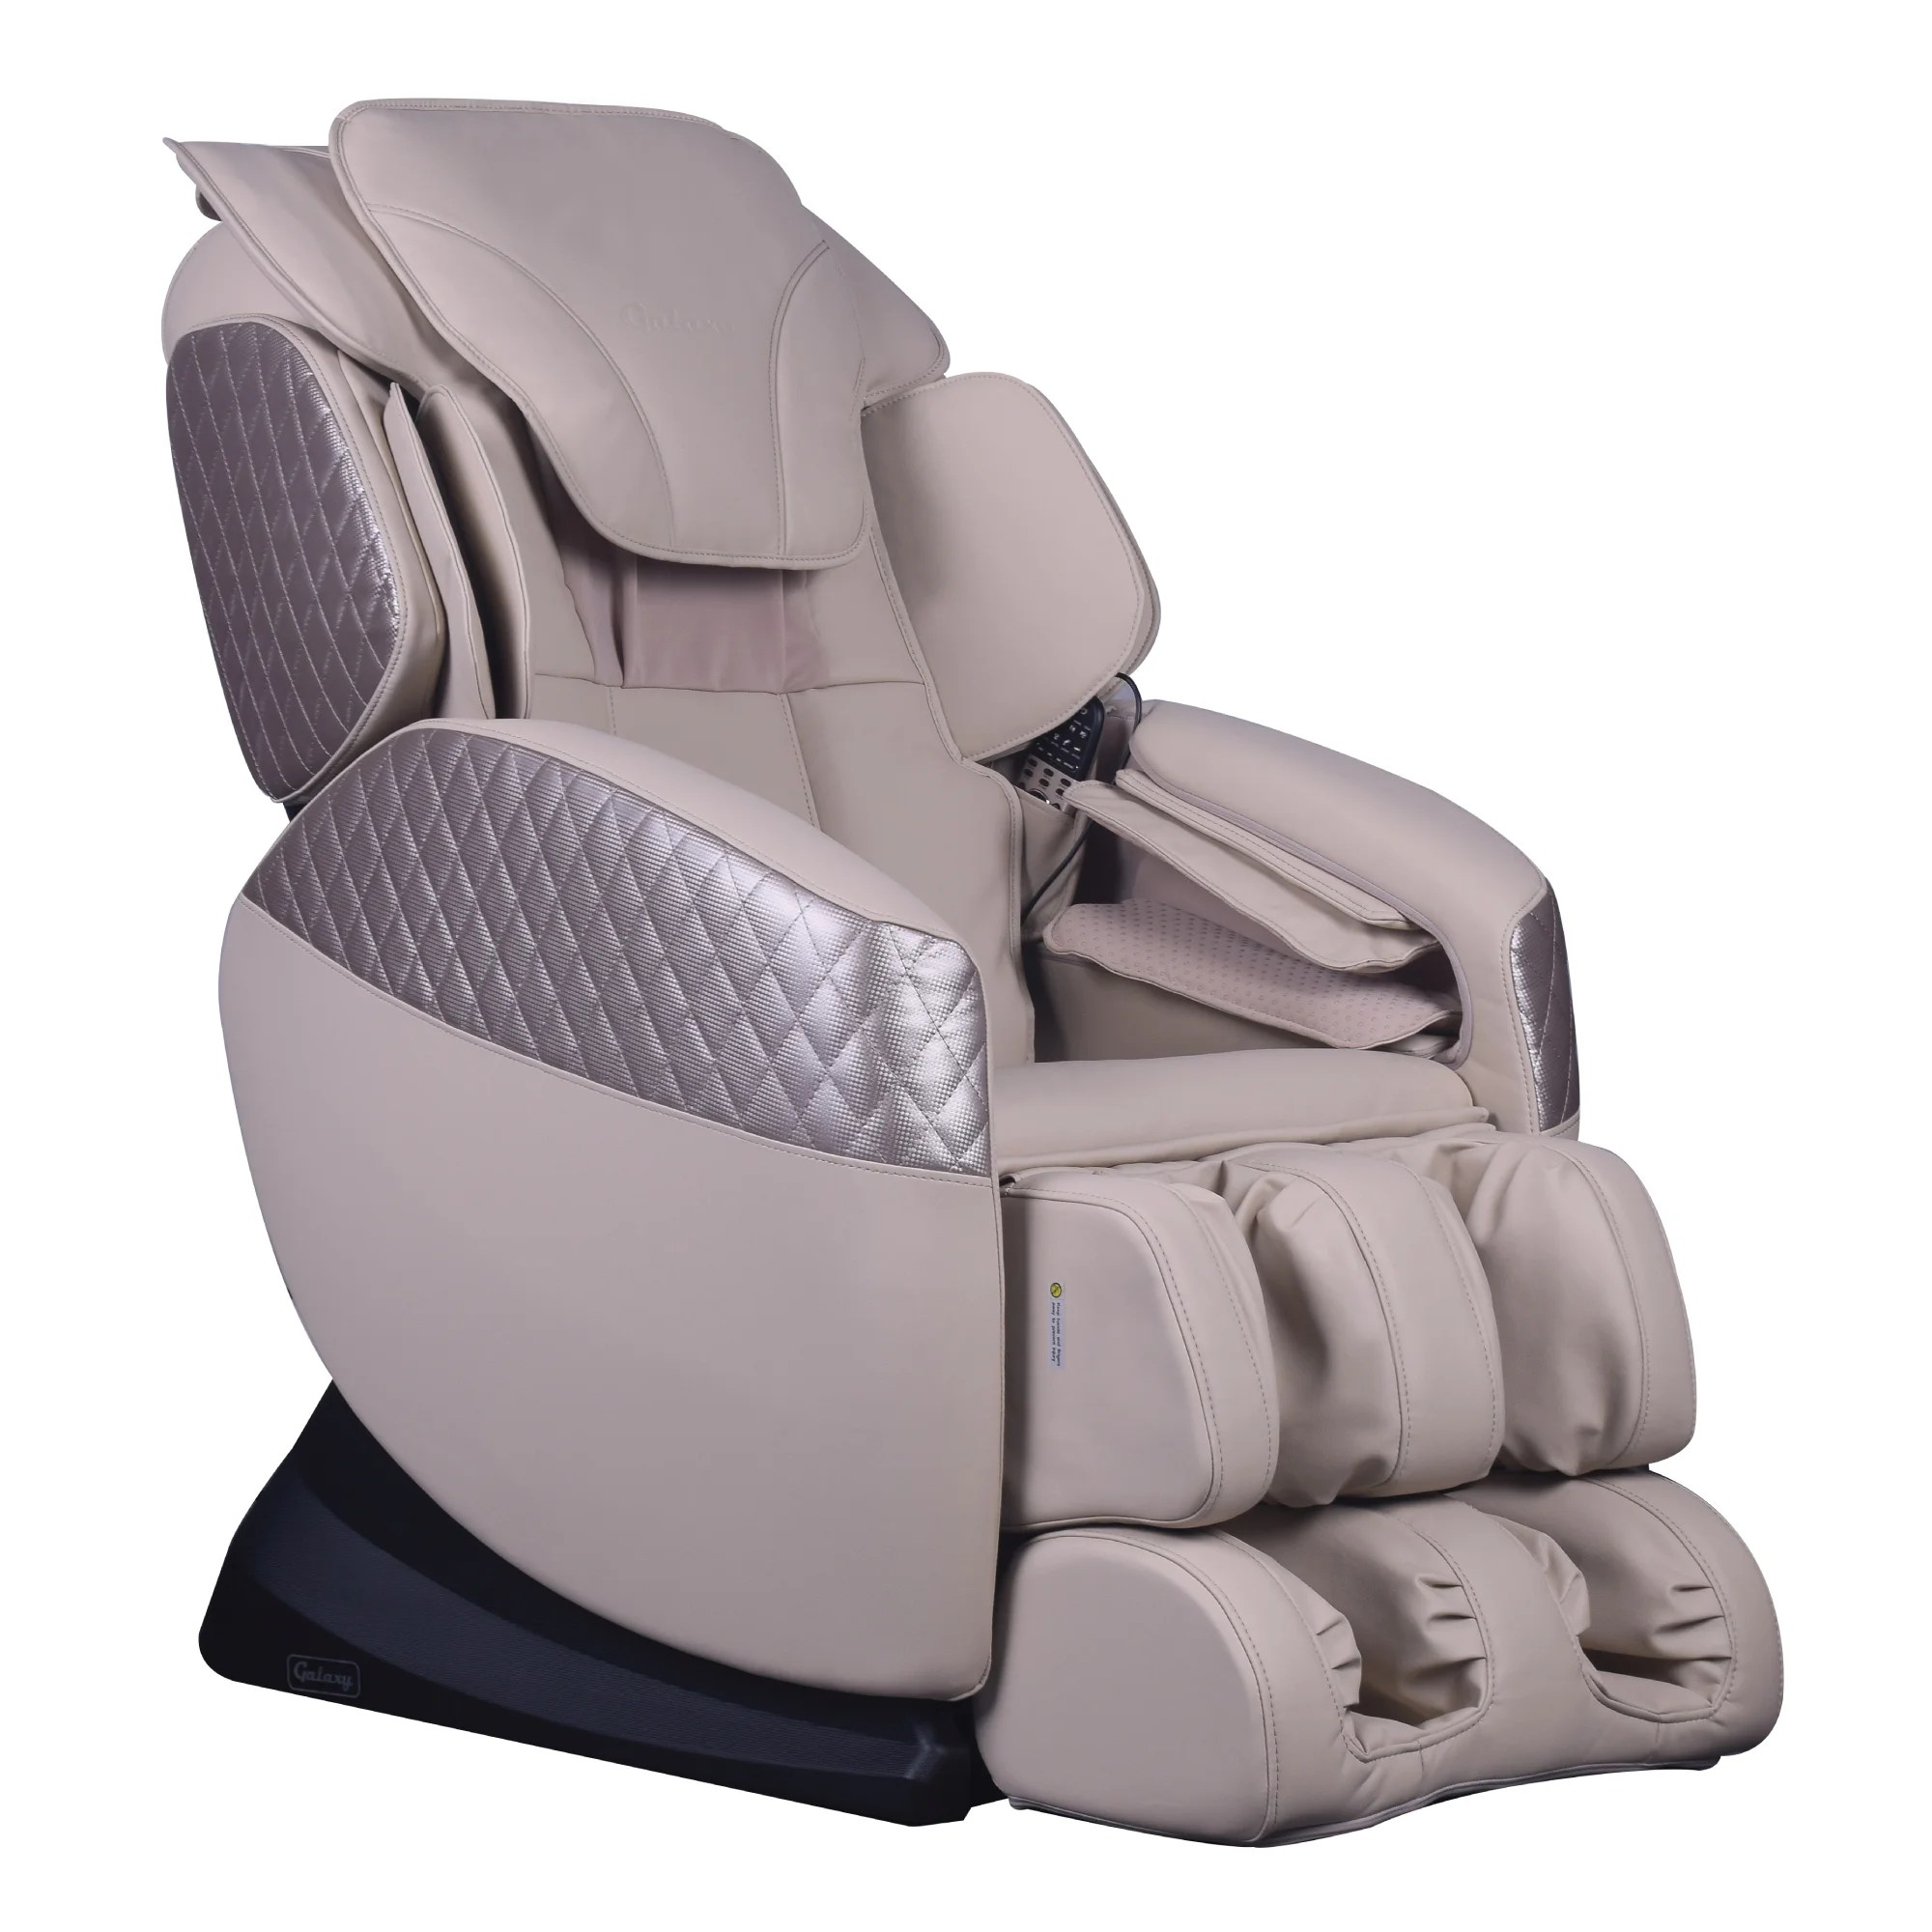 fujita massage chair review covers for folding chairs rentals full body massager homcom electric